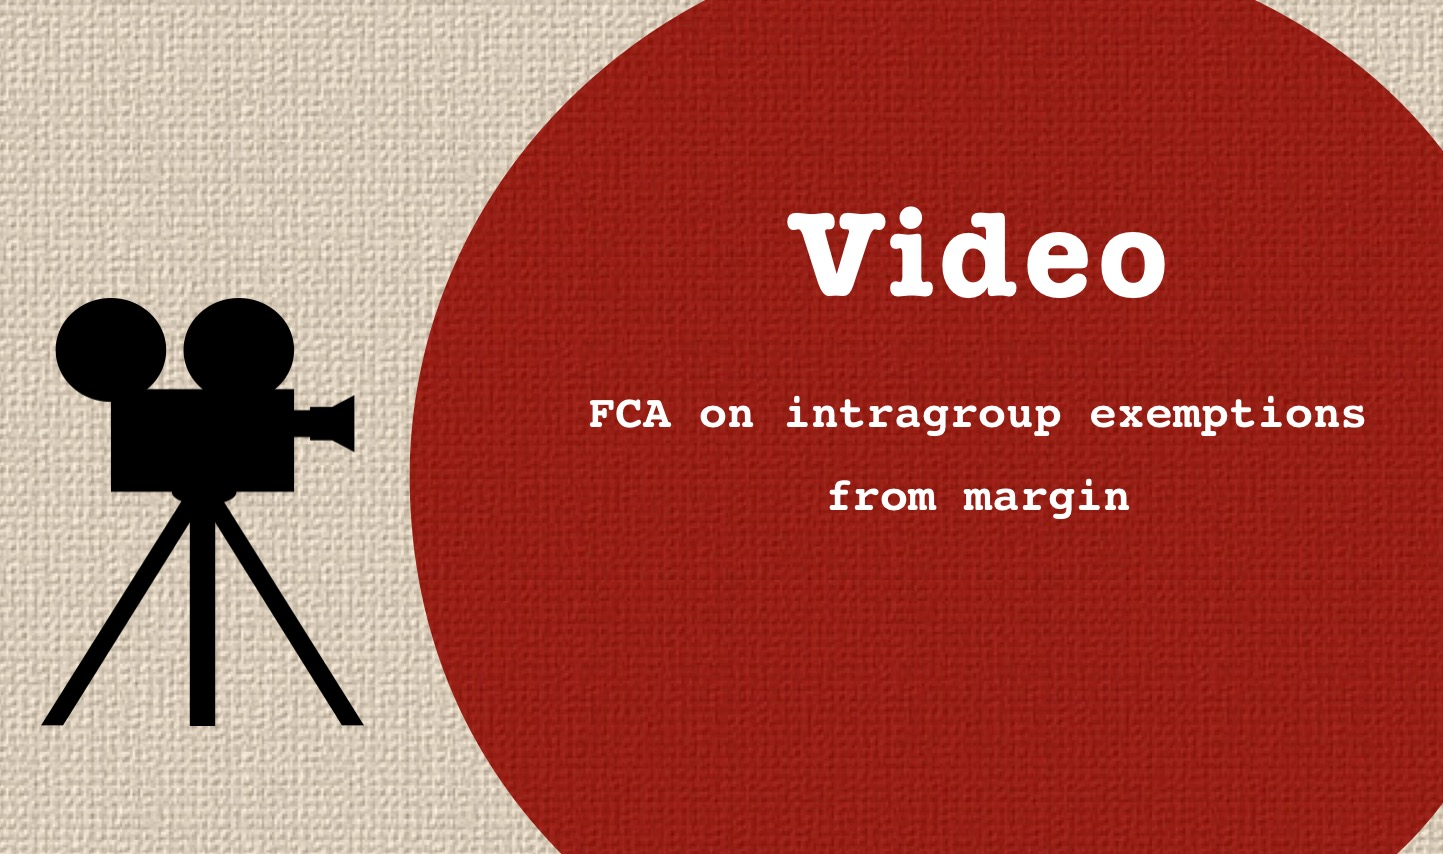 intragroup exemption margin fca video